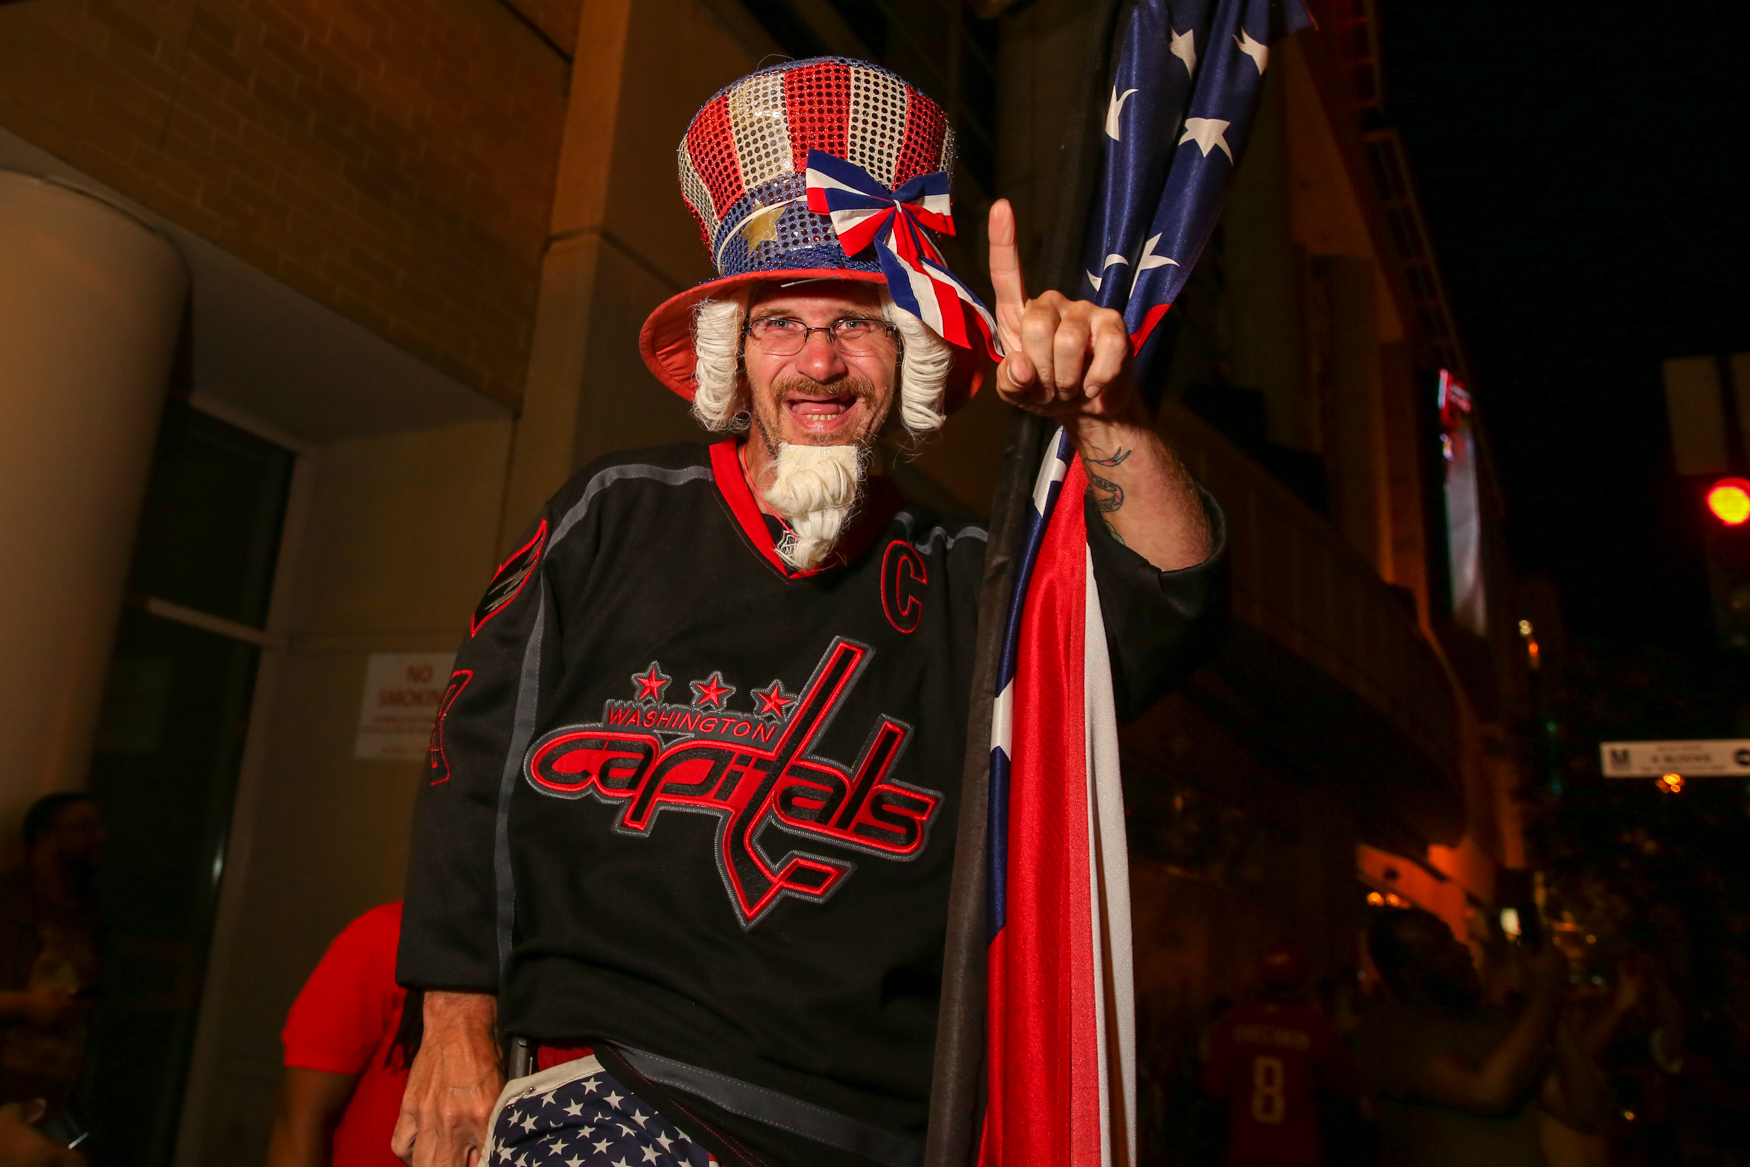 Thousands of fans cried, cheered and celebrated as the Washington Capitals finally won the Stanley Cup after an intense game against the Las Vegas Knights. Here was the scene outside Capital One Arena. (Amanda Andrade-Rhoades/DC Refined)